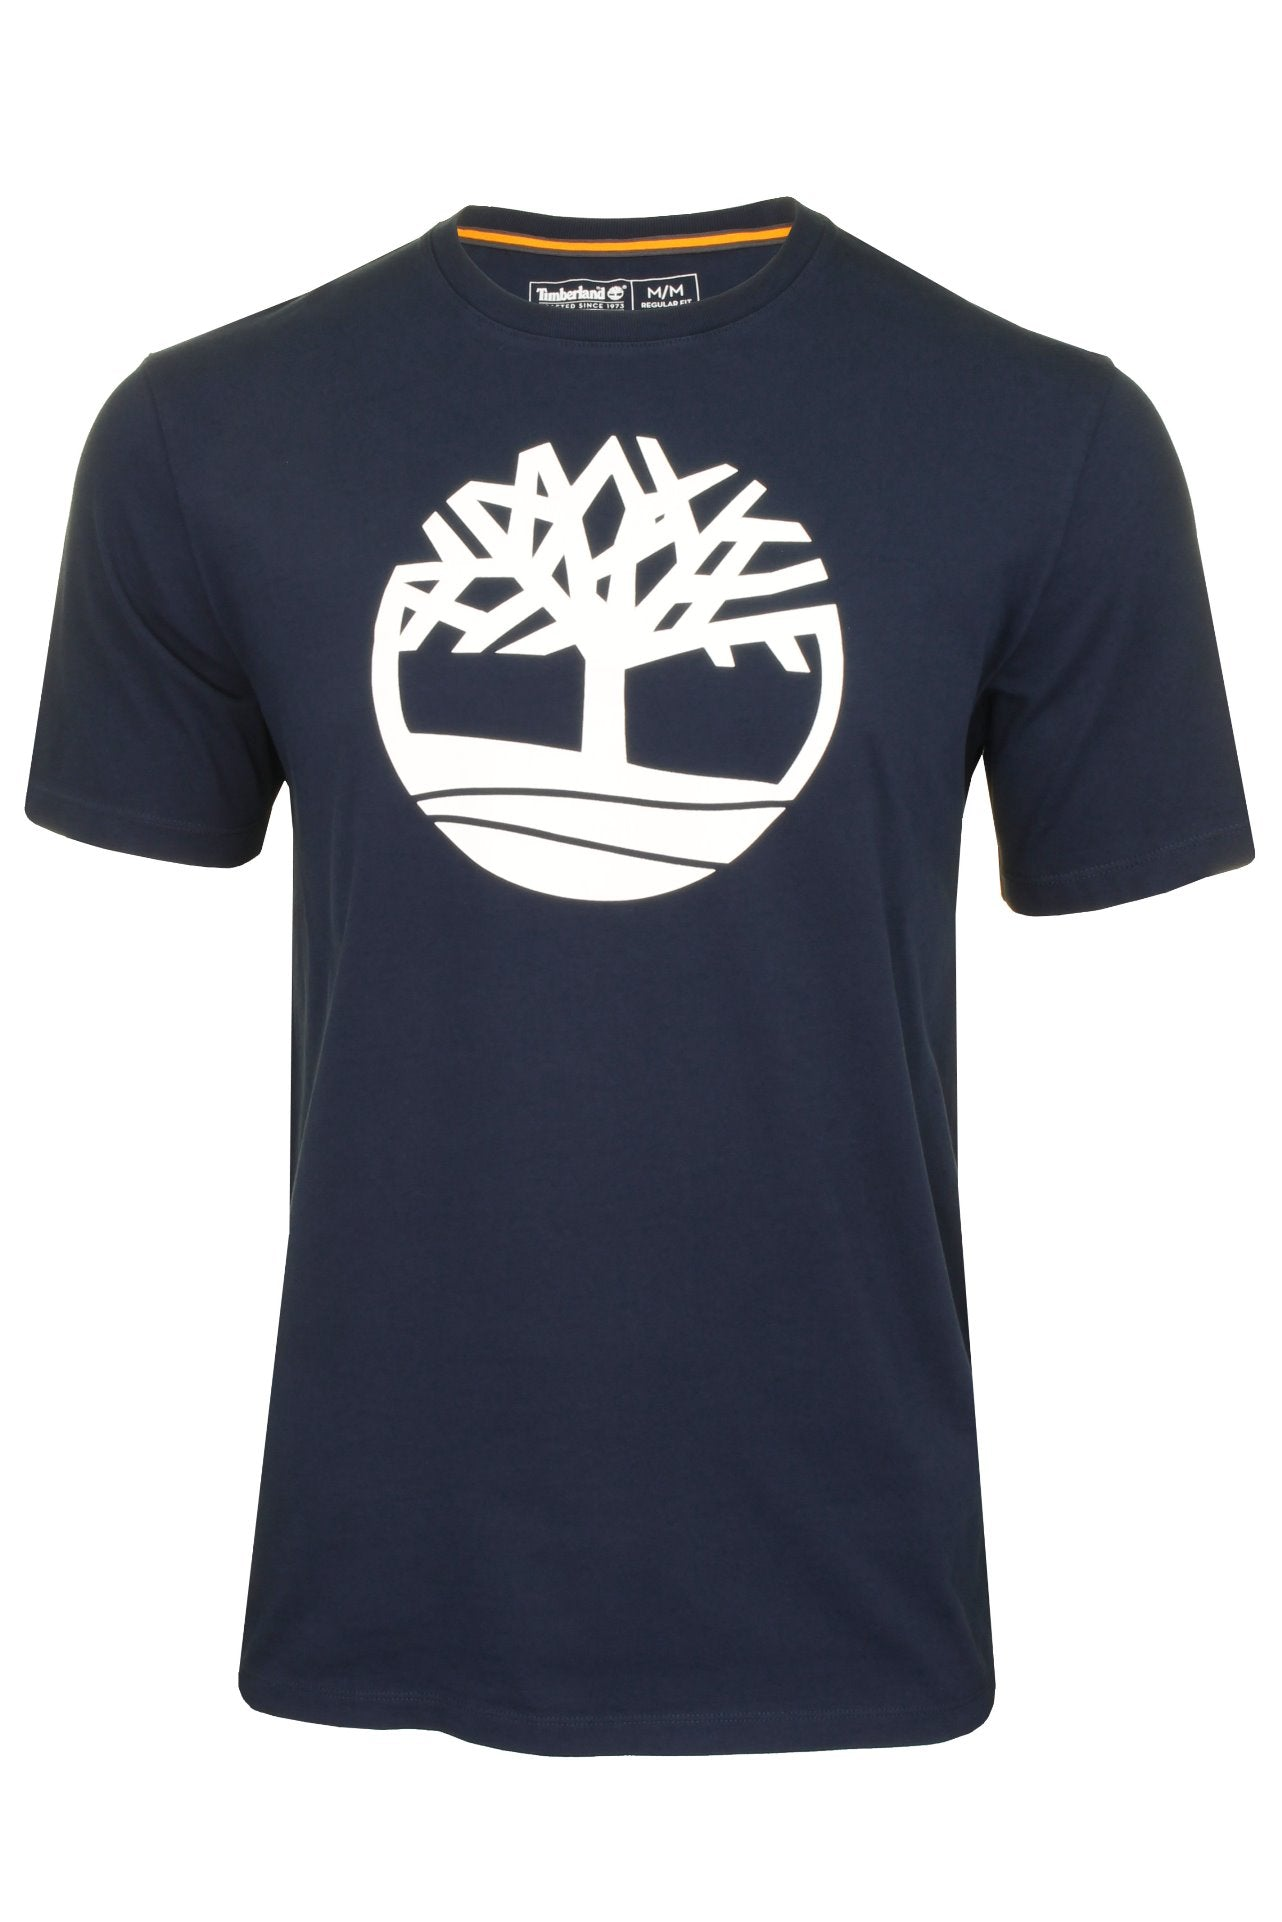 Timberland 'Kennebec River Tree Logo' T-Shirt - Short Sleeved_01_Tb0A2C2R_Dark Sapphire